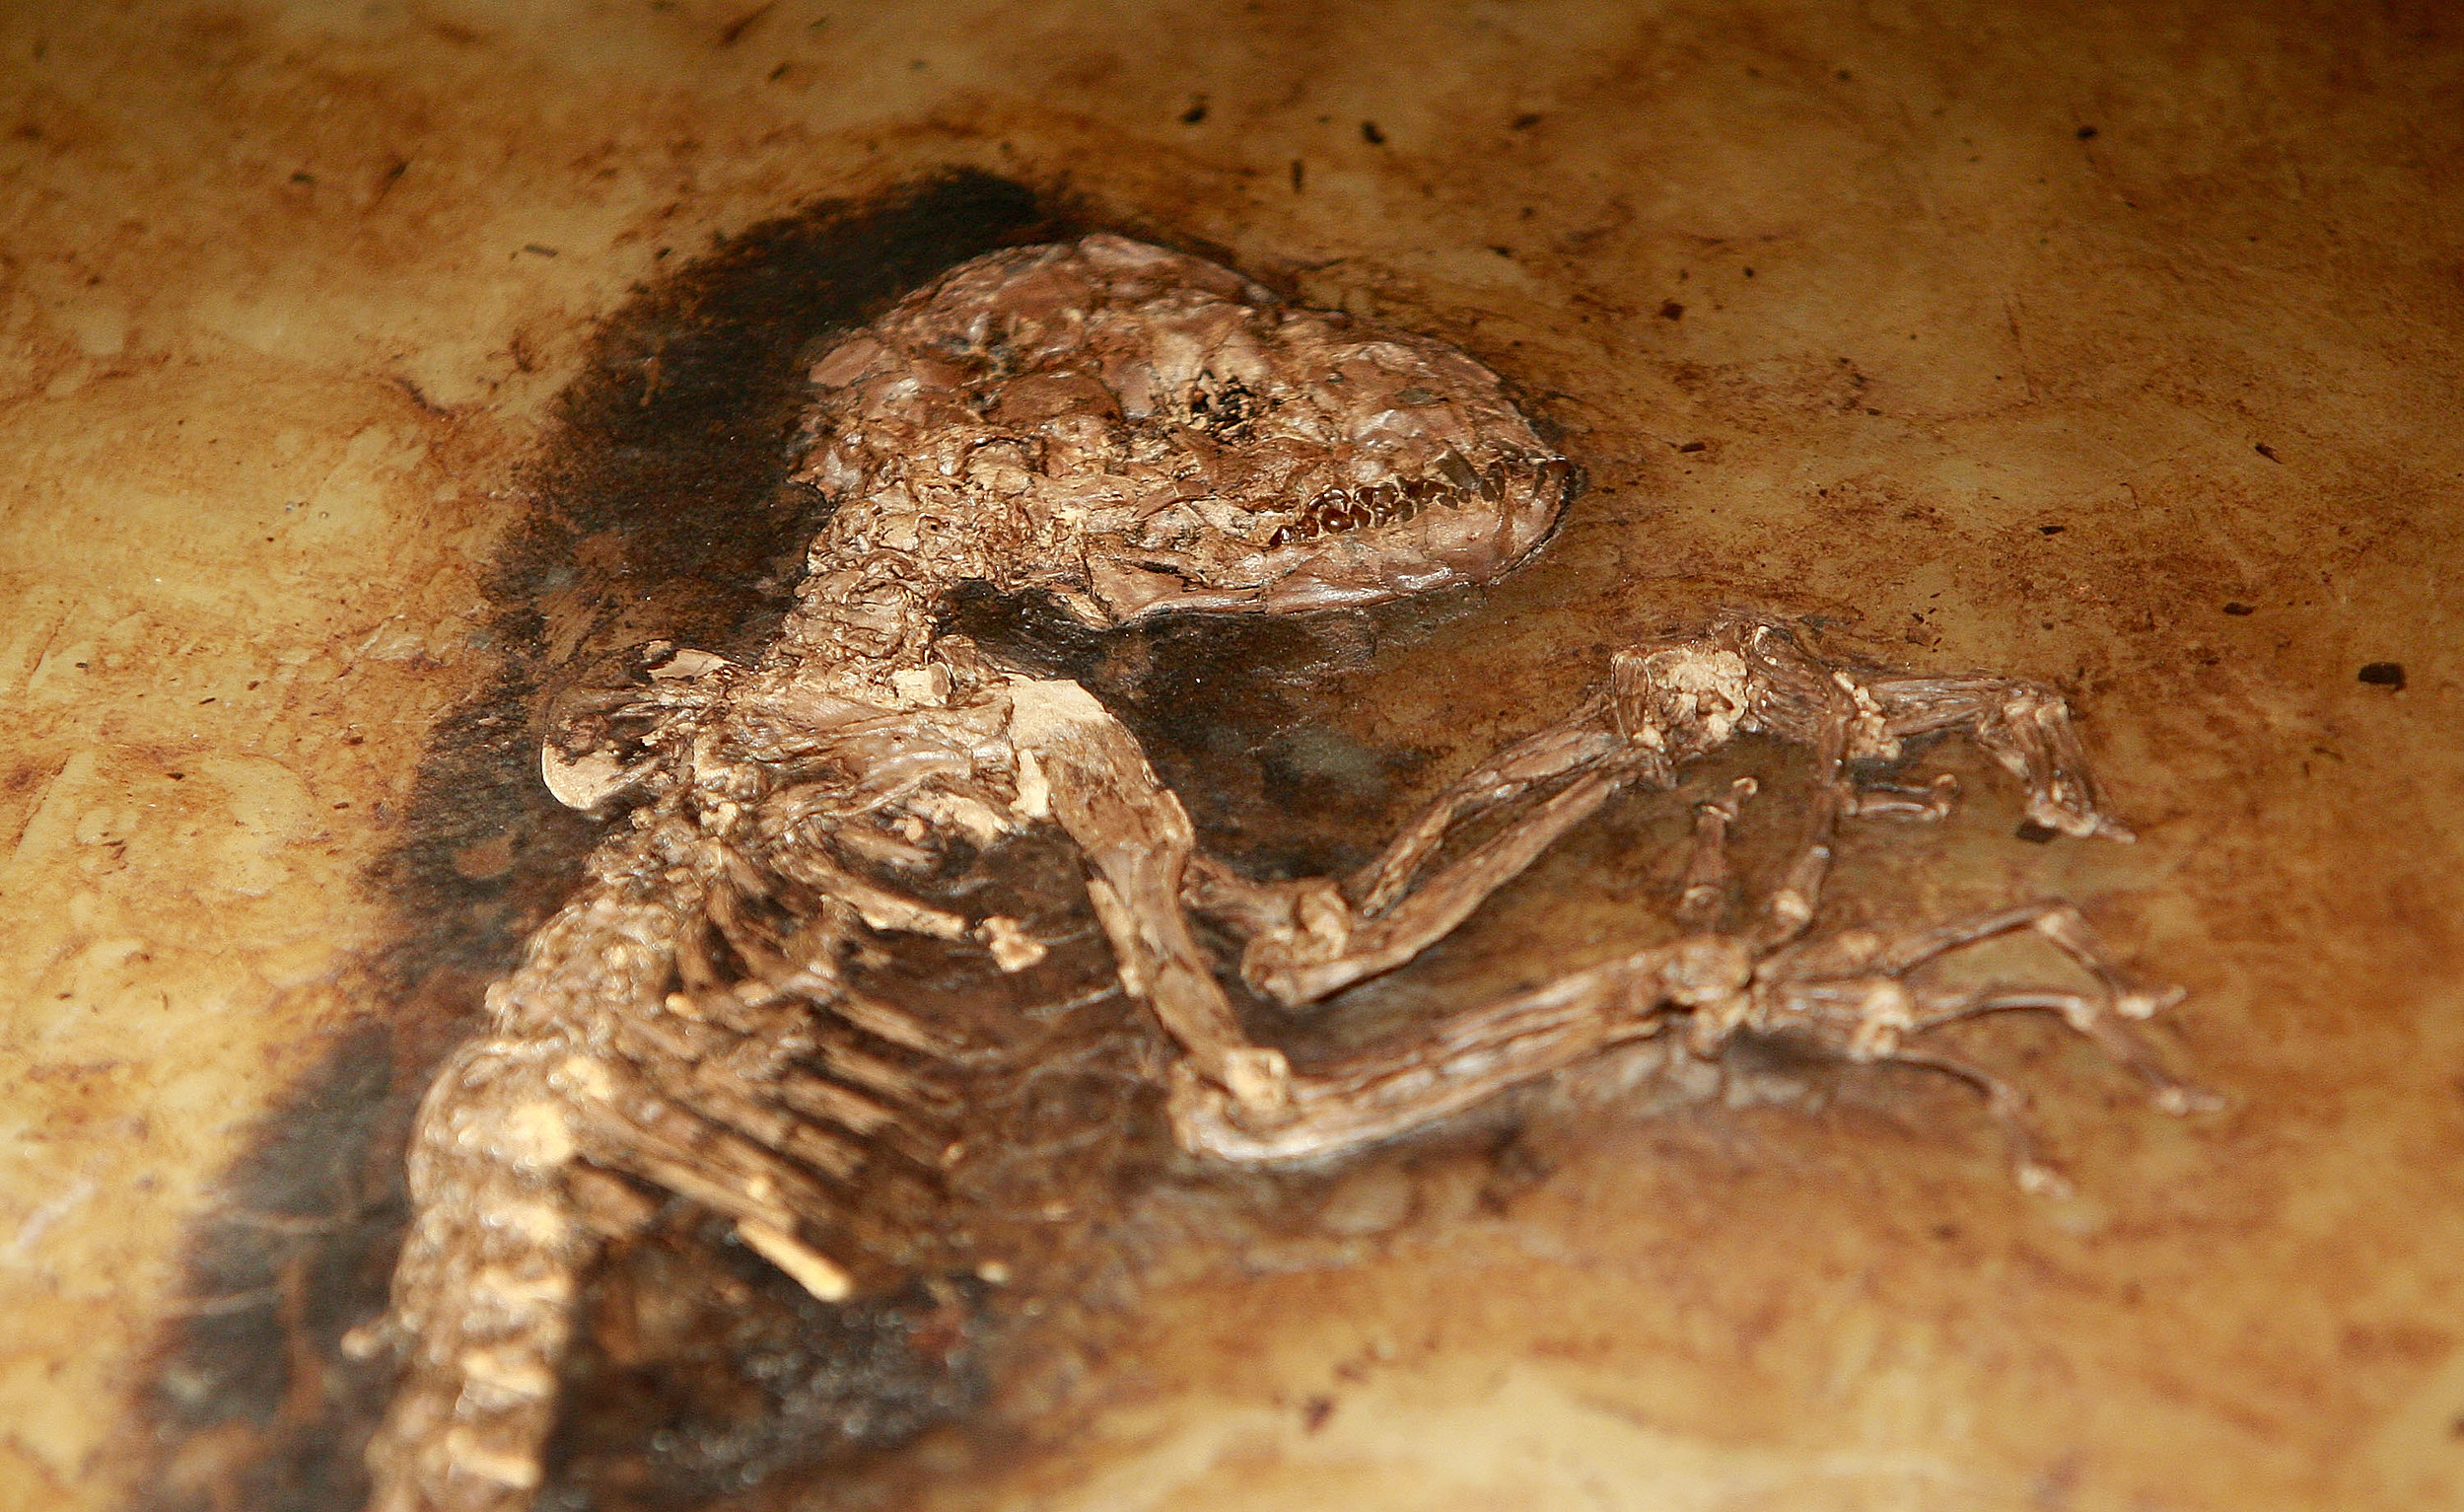 Scientists Debut A 47 Million-Year-Old Monkey Fossil